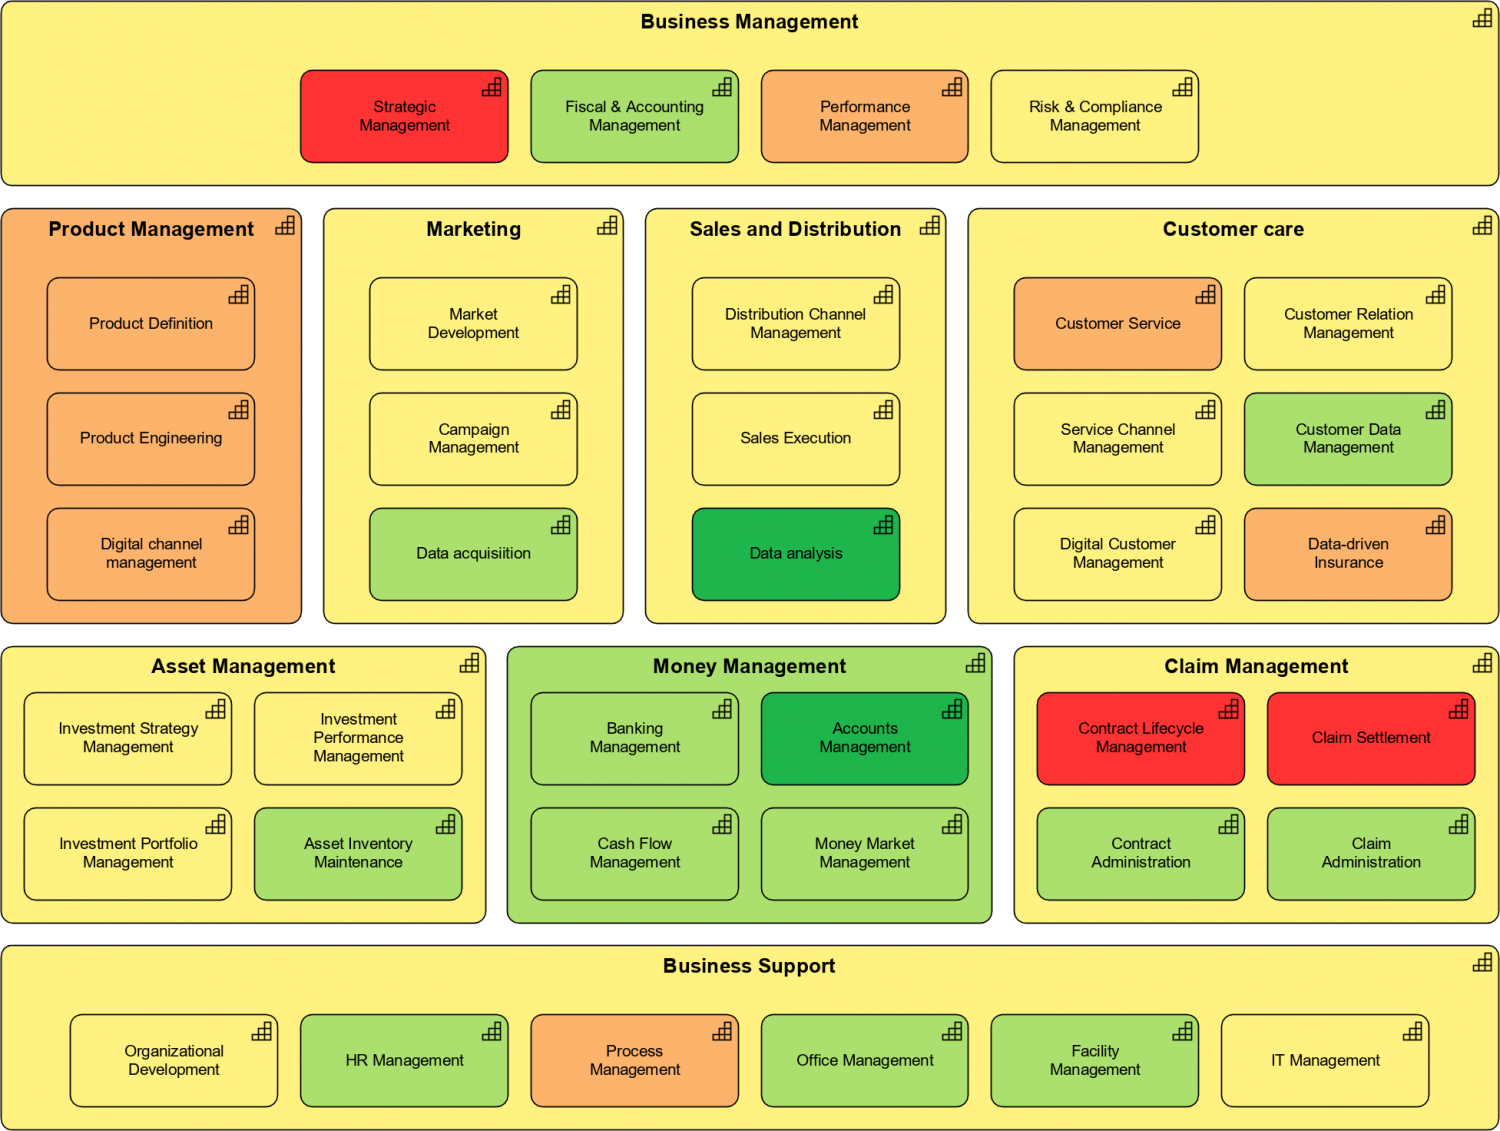 Capability Heat Map - Business Value